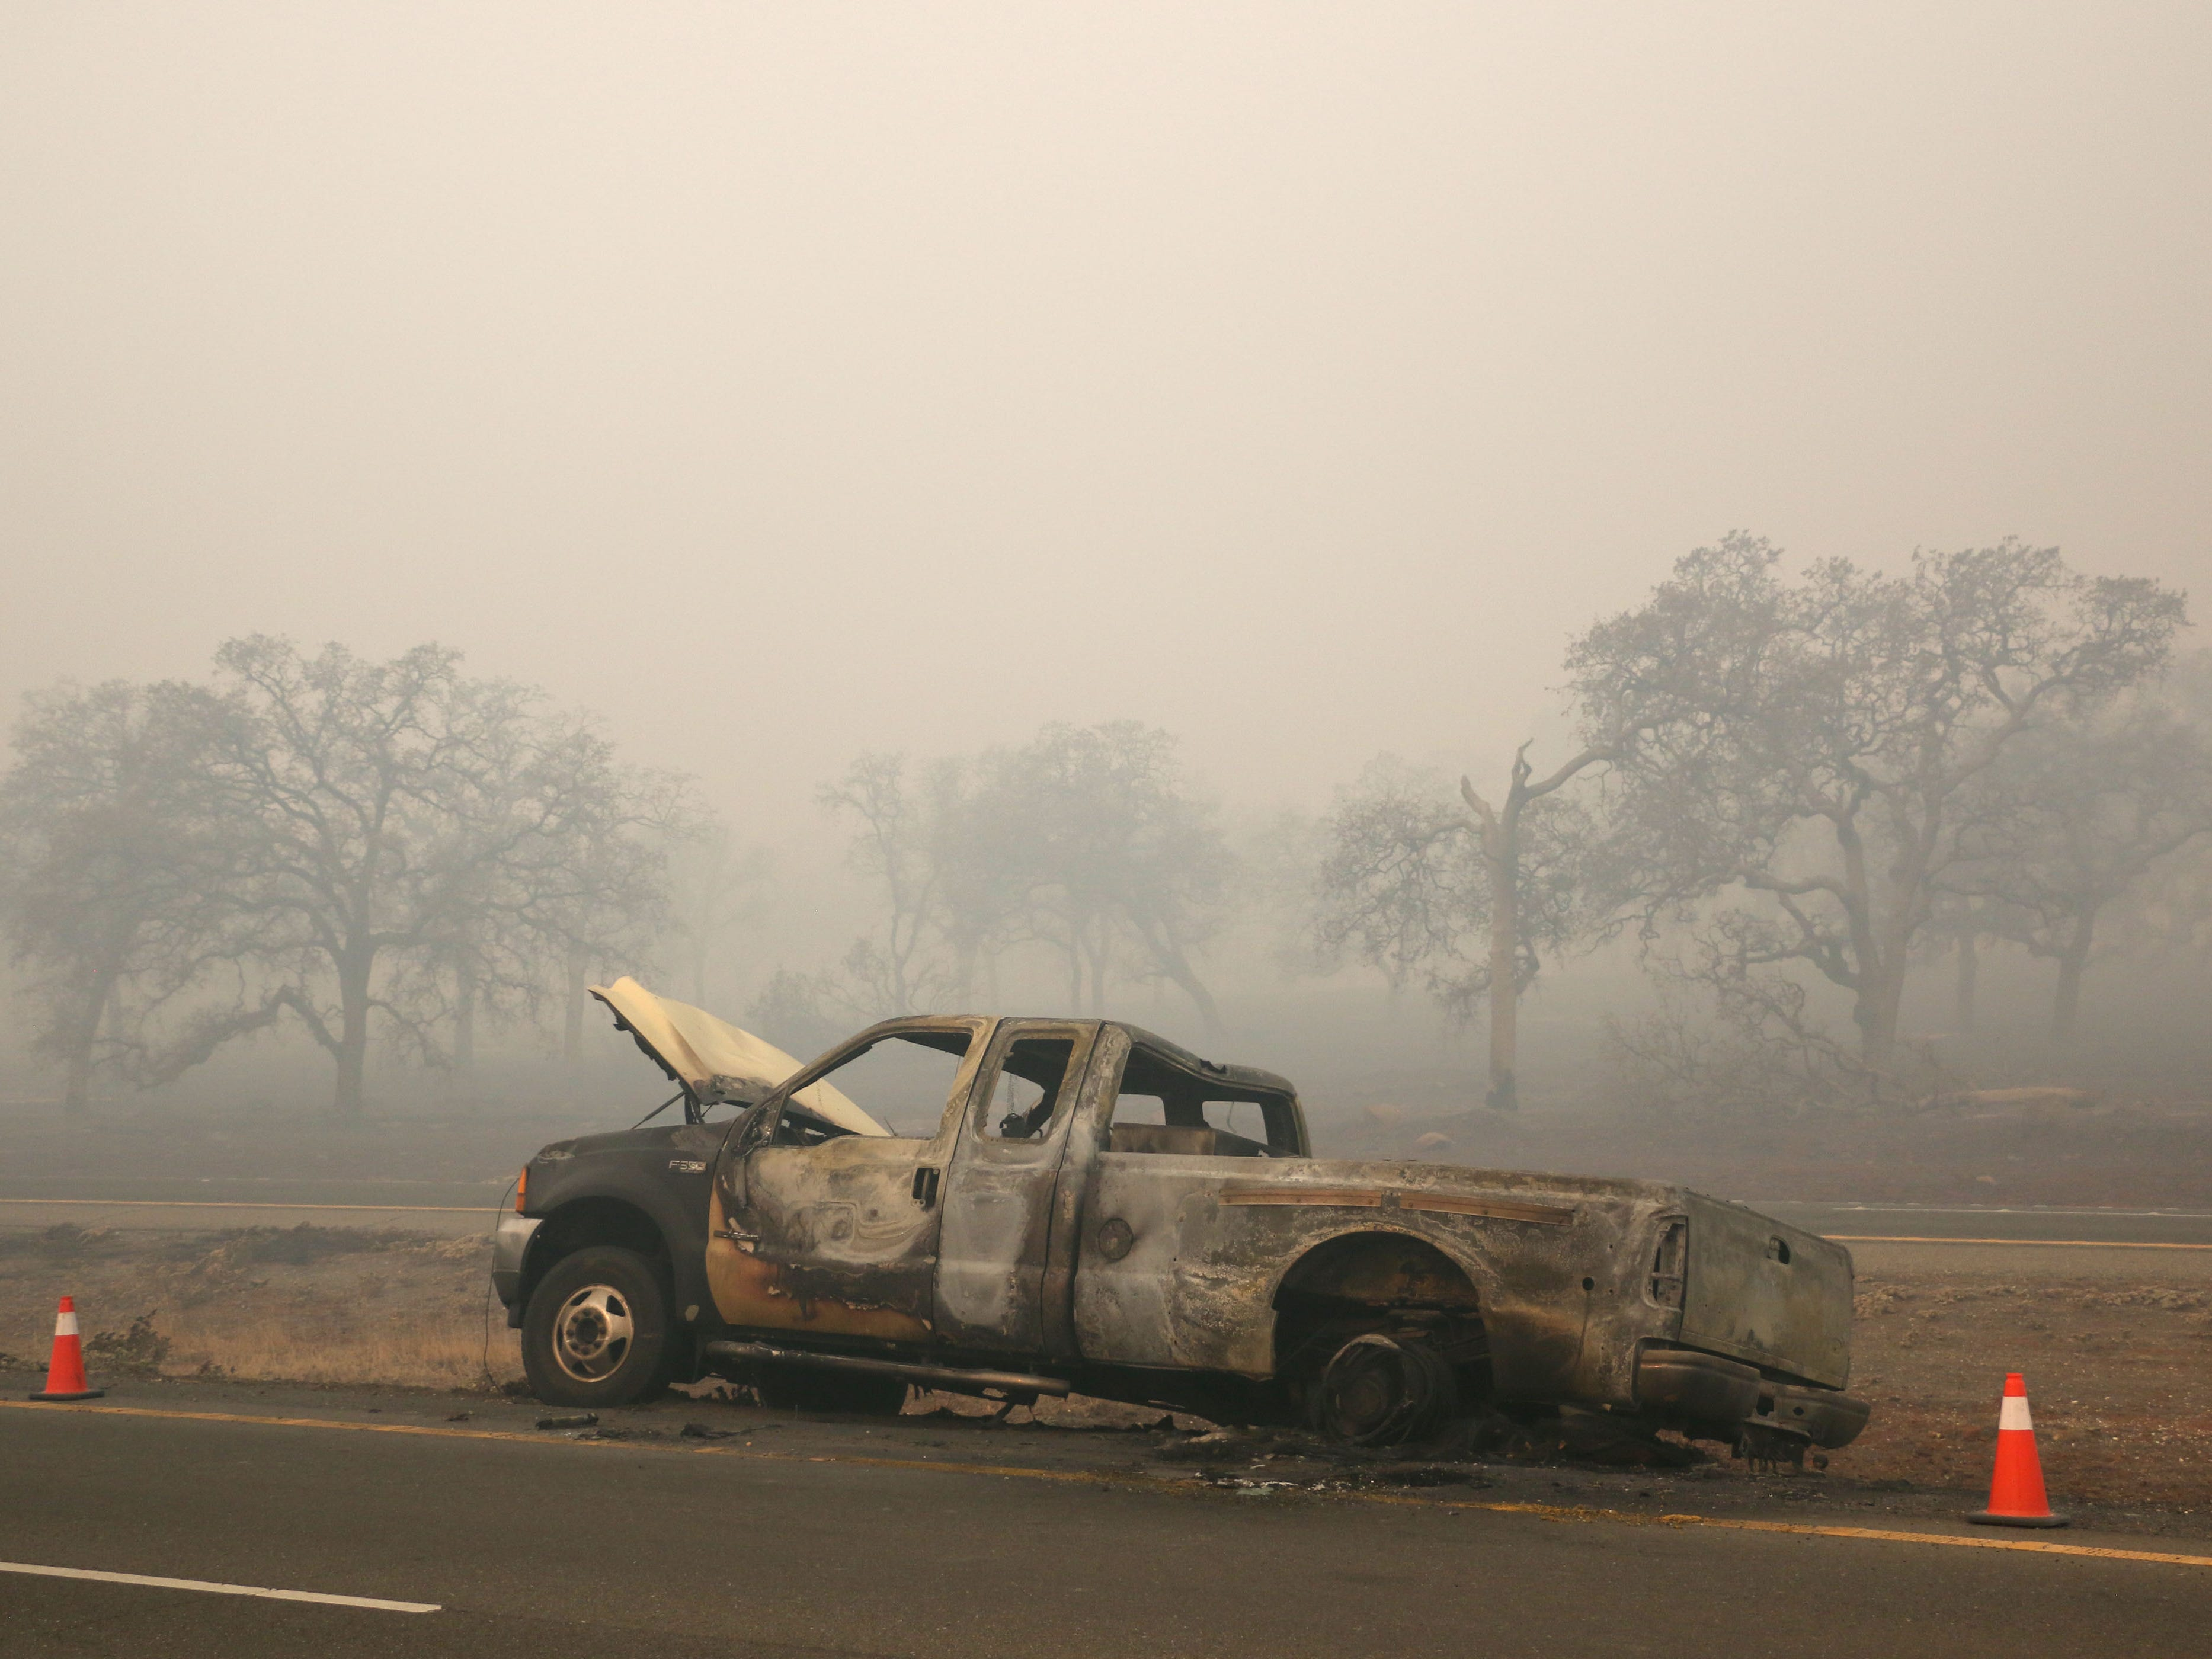 Photos: The Camp Fire destroyed most of Paradise, California